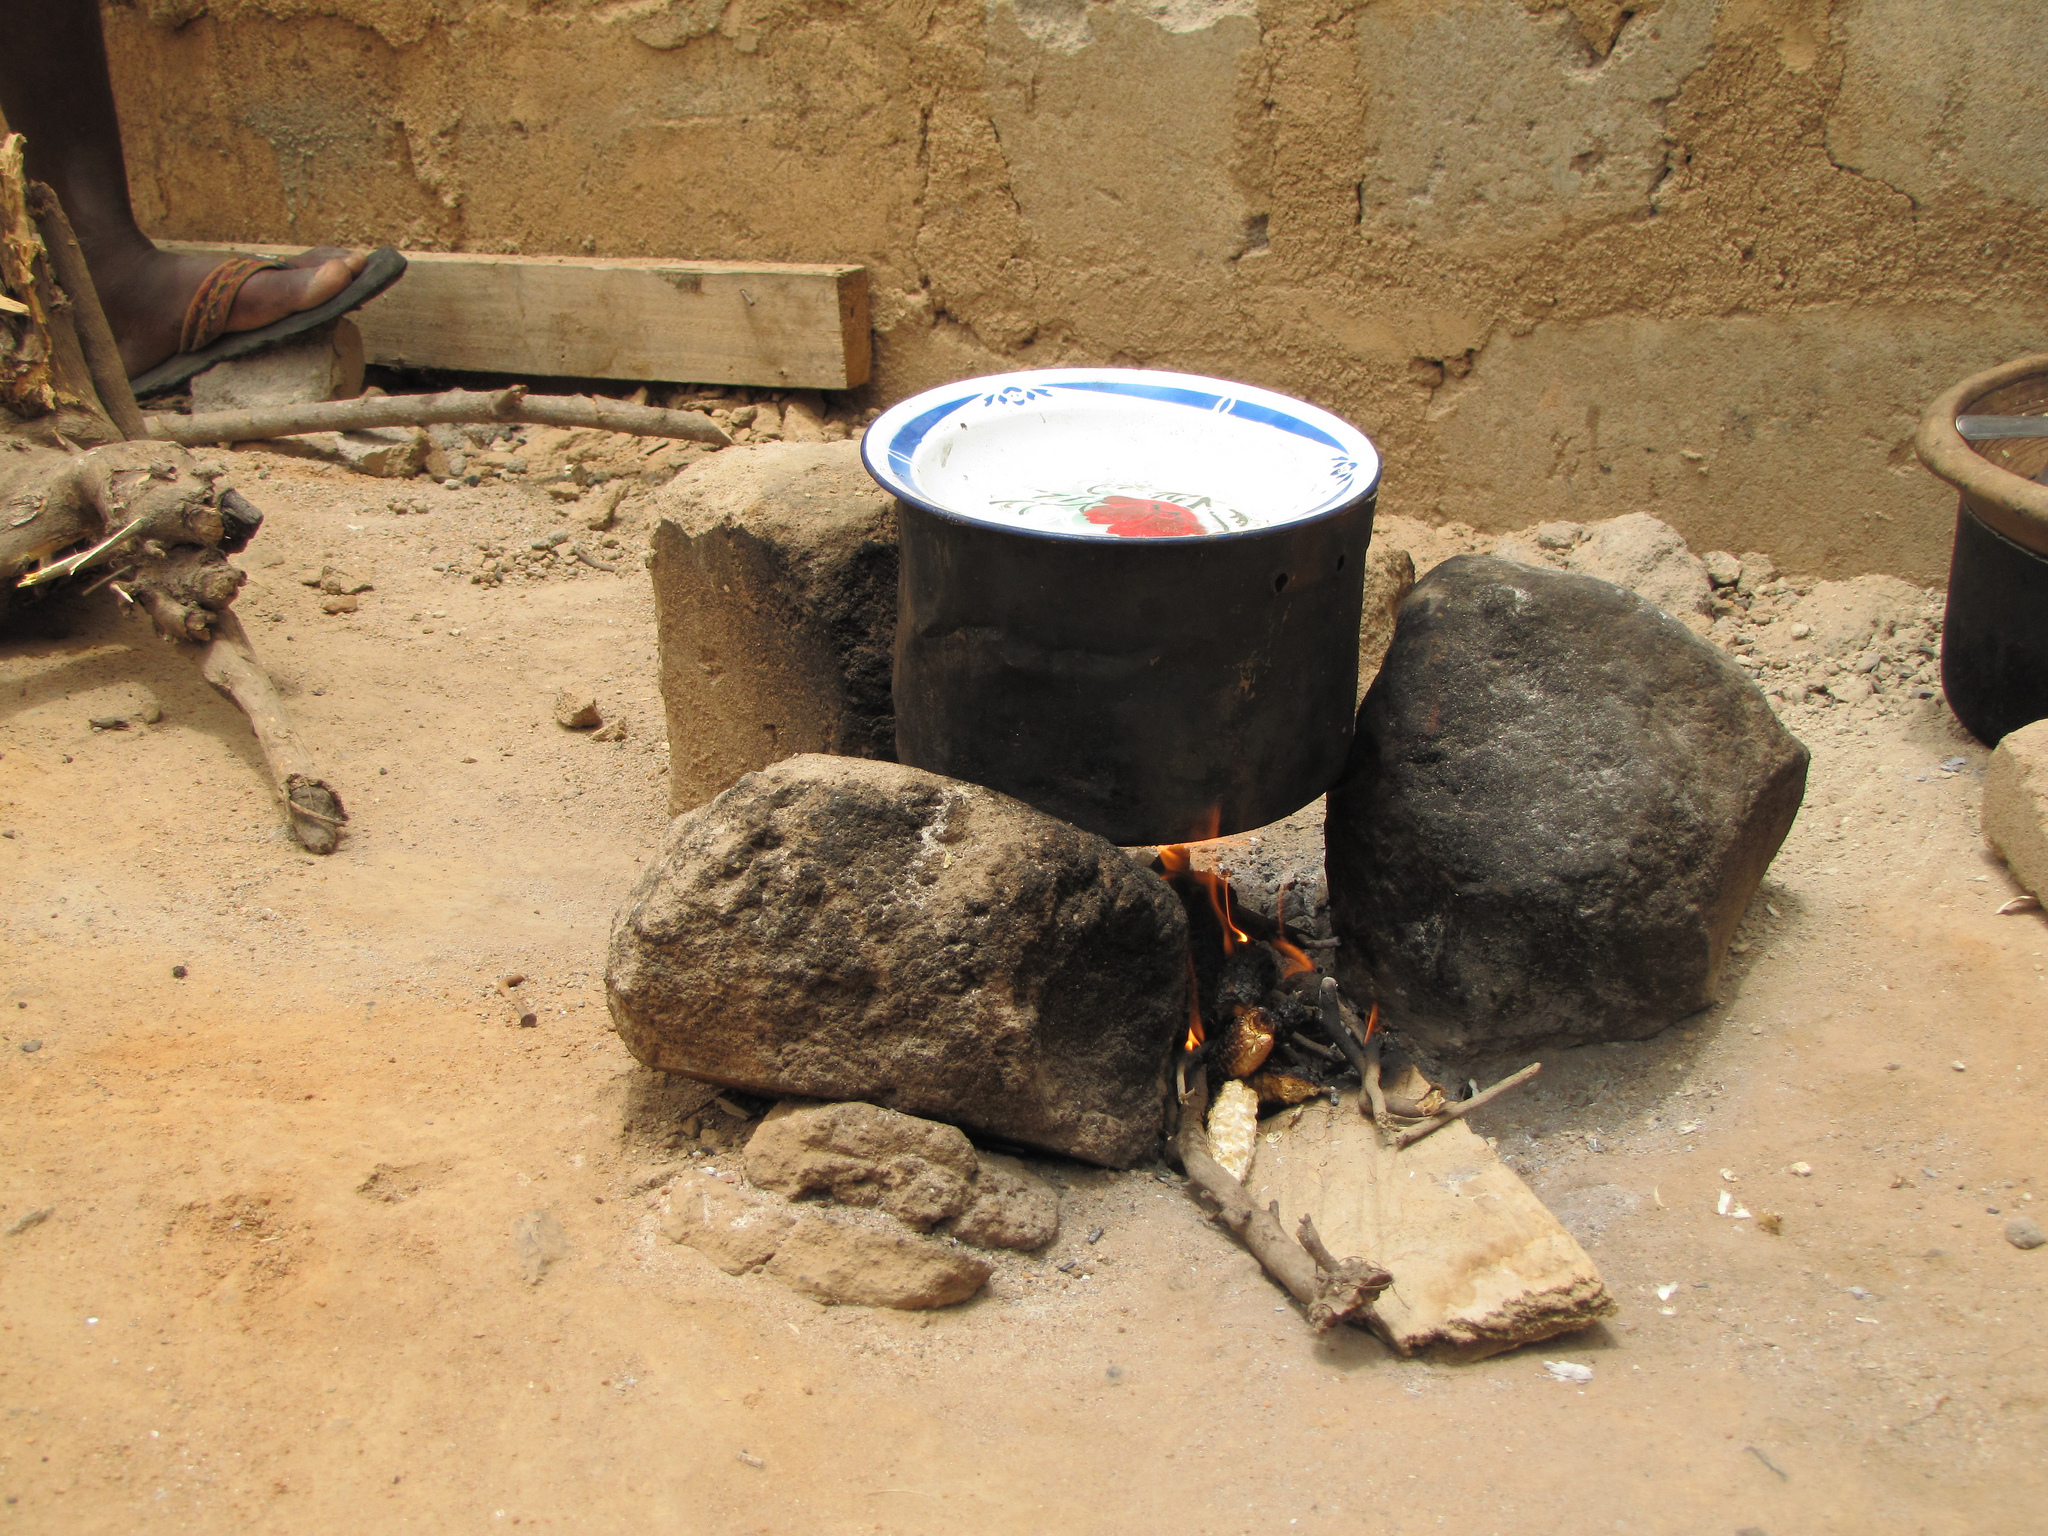 Rudimentary Cookstove via the Cookstove Alliance - Cookstove Community